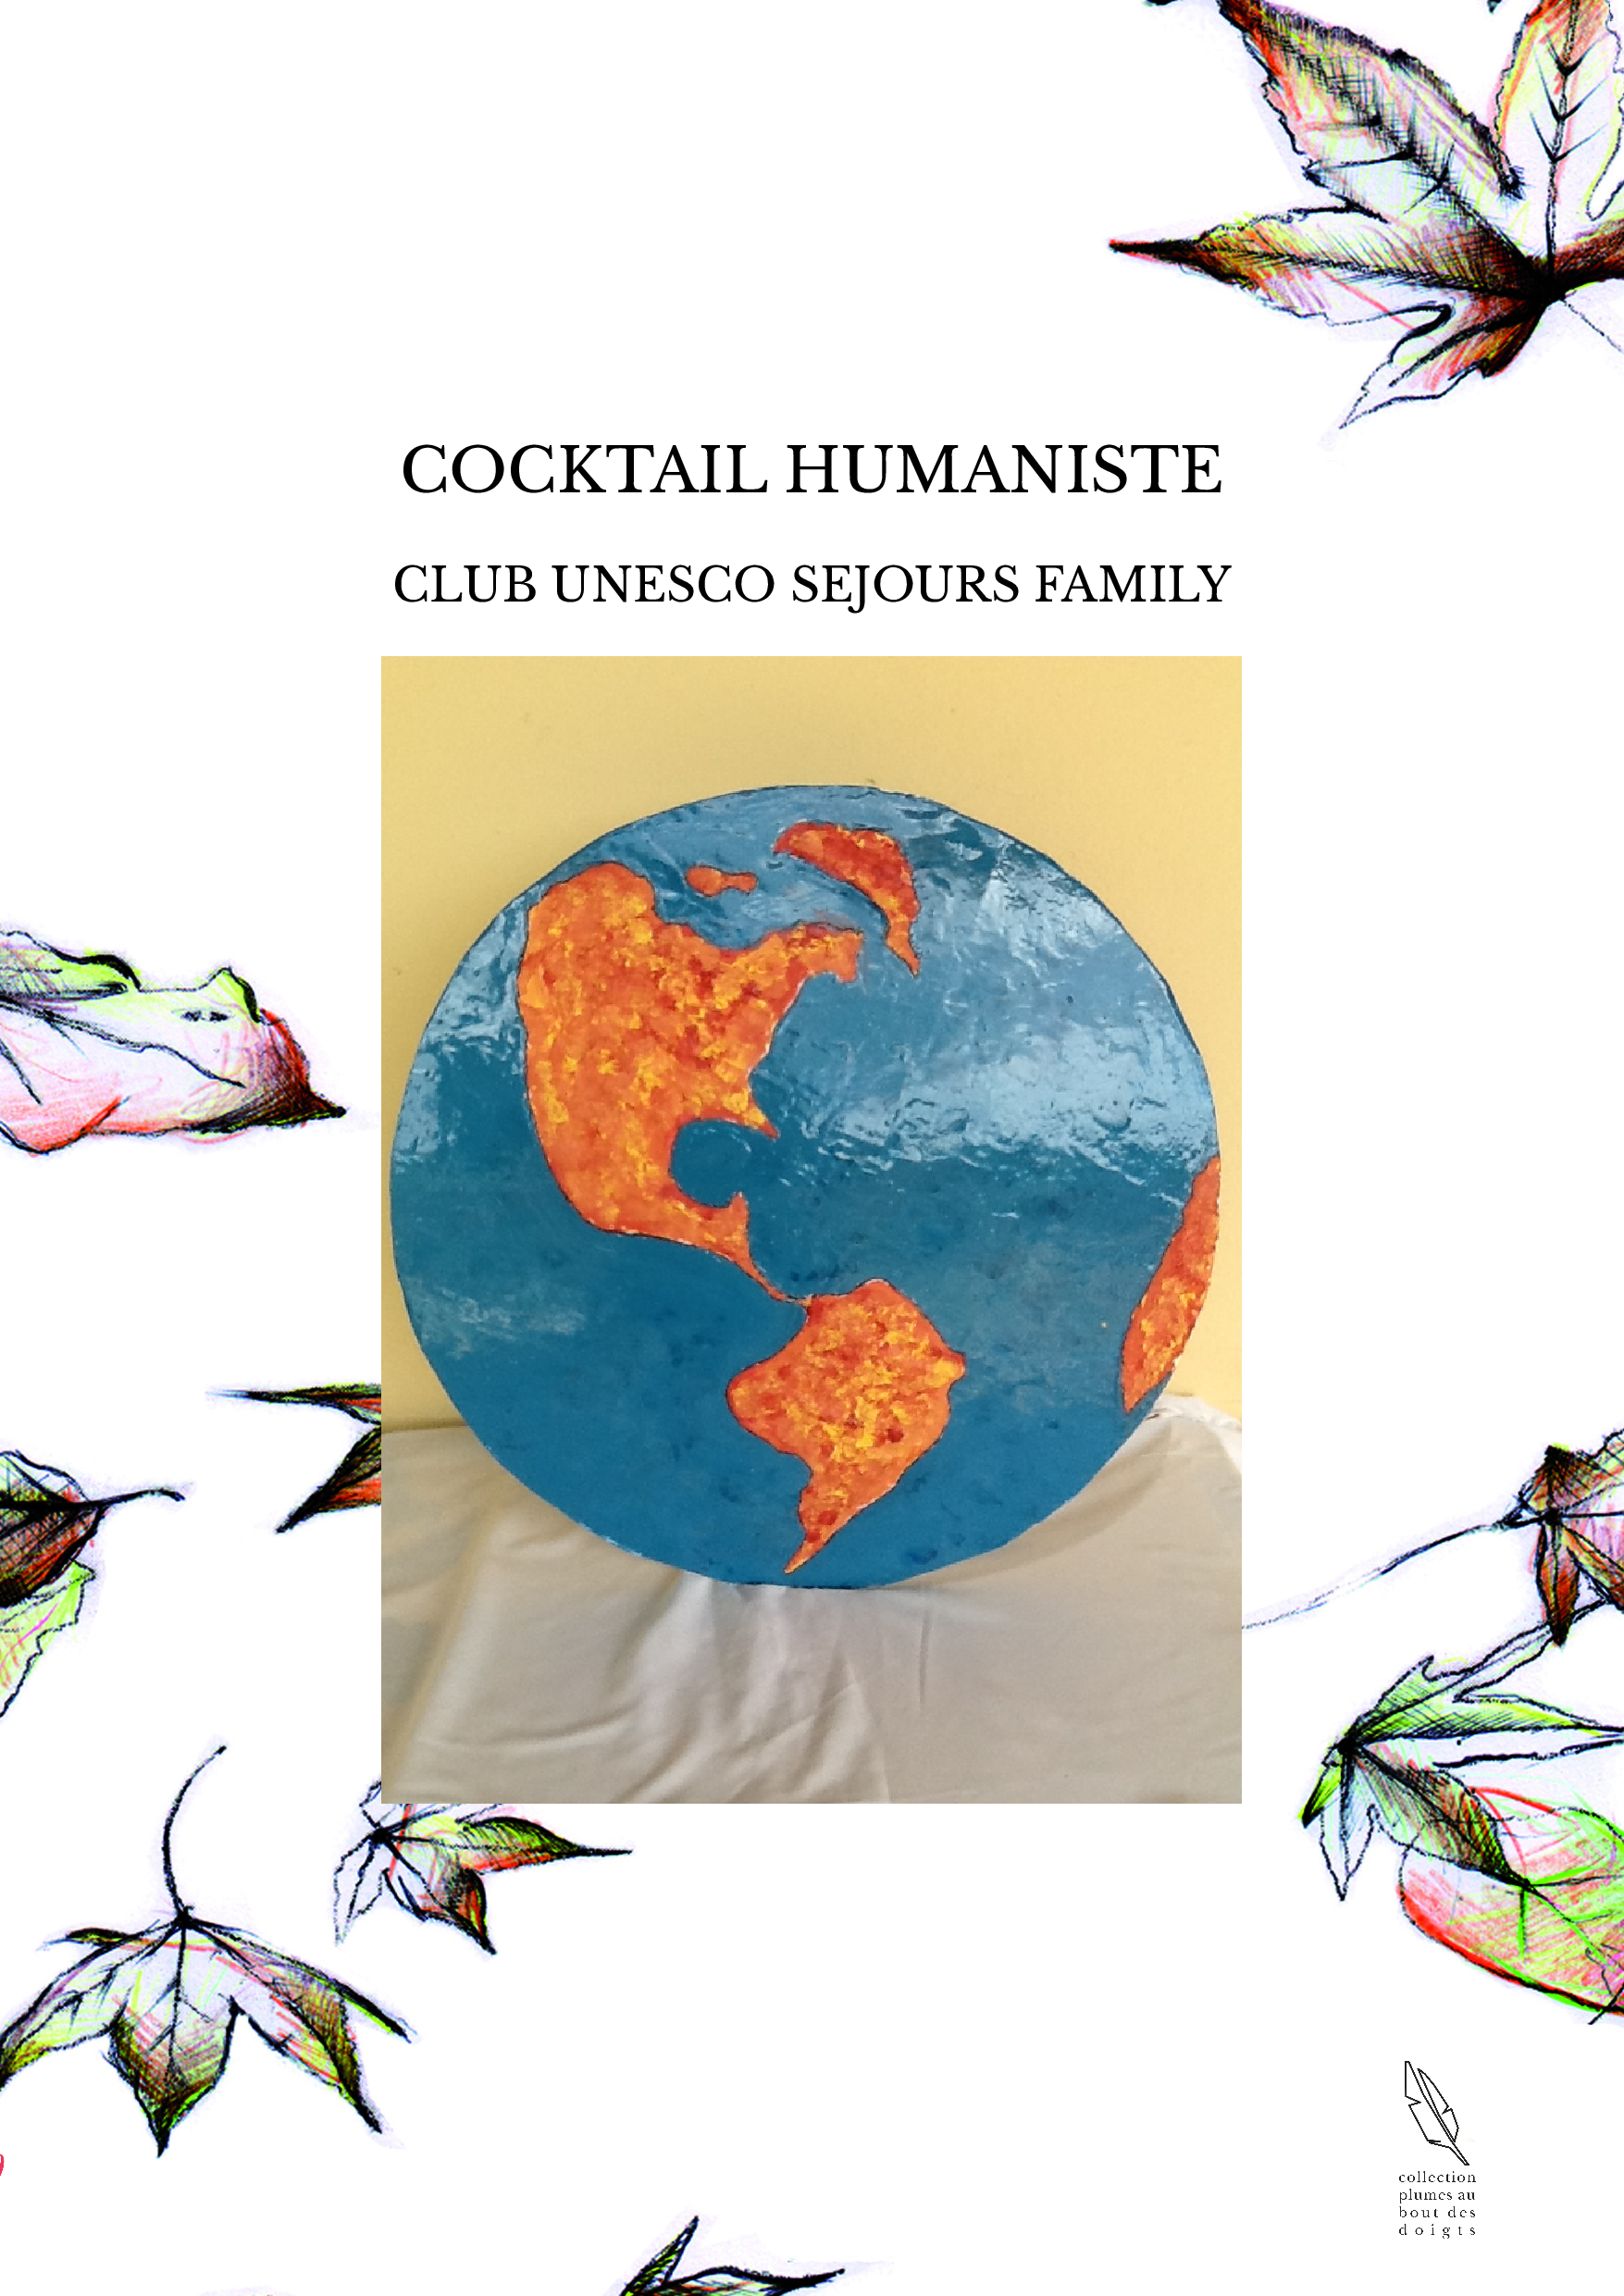 COCKTAIL HUMANISTE